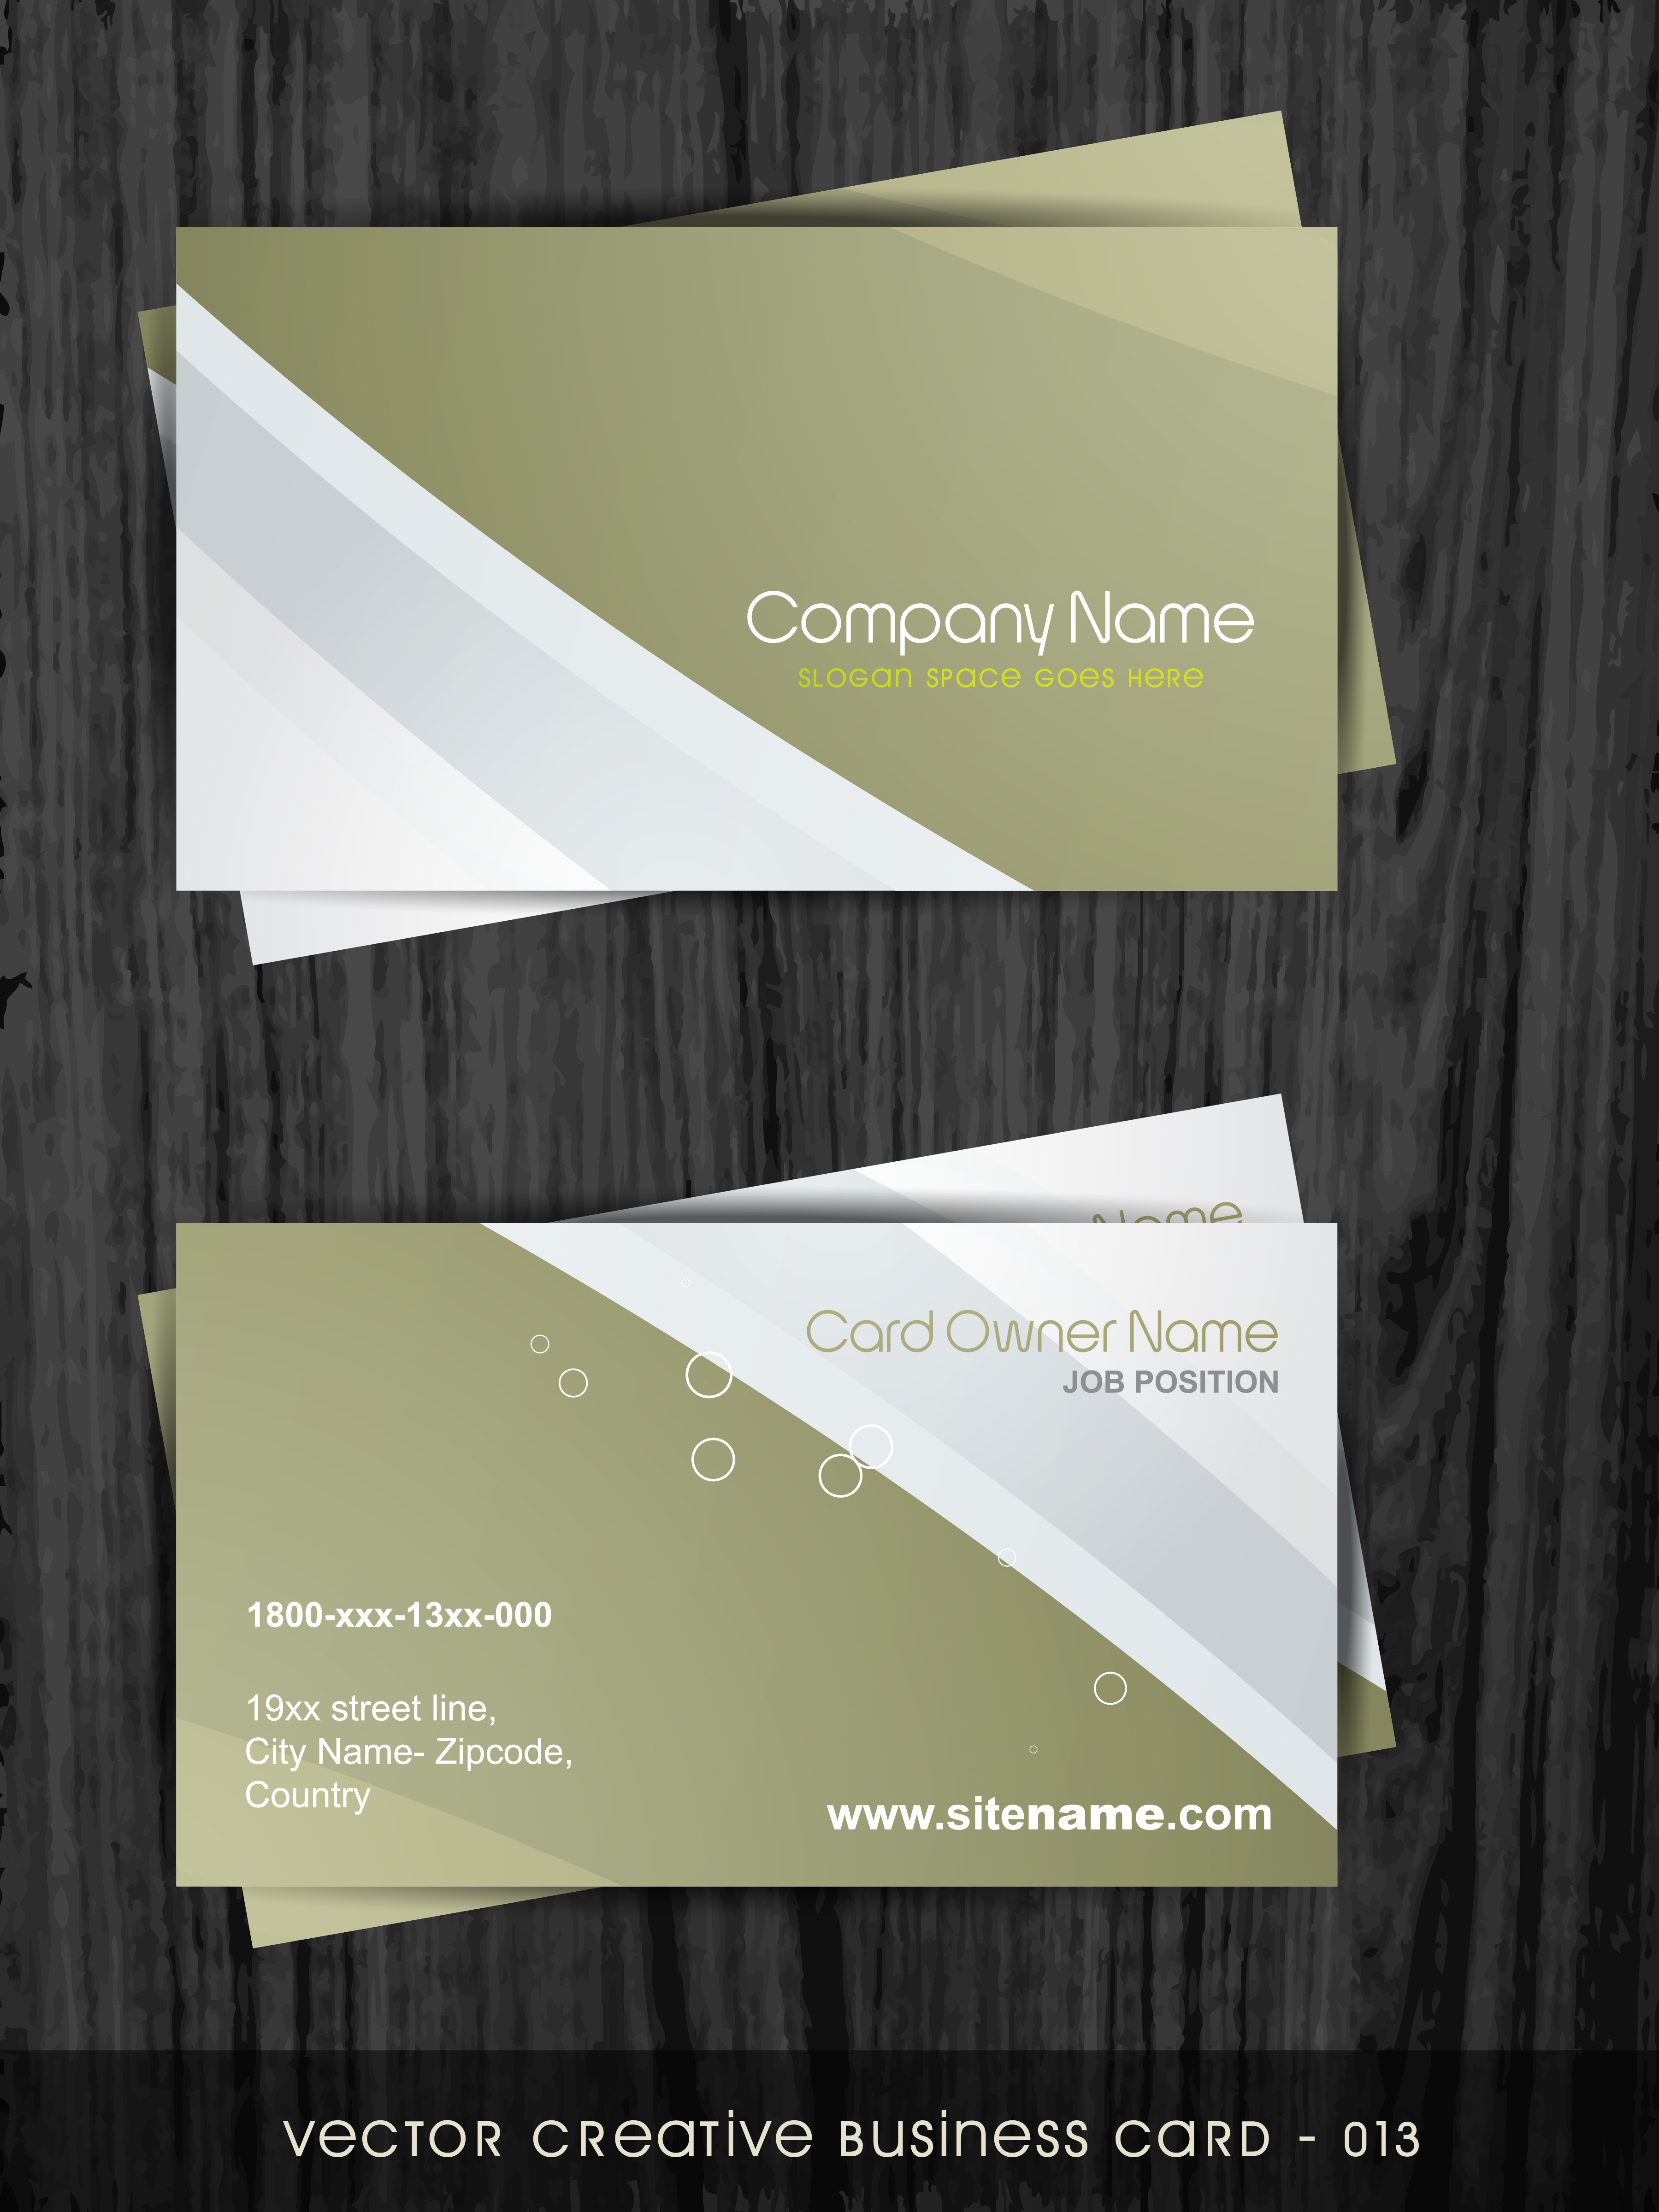 Free vector business card templates 34542 free downloads reheart Choice Image